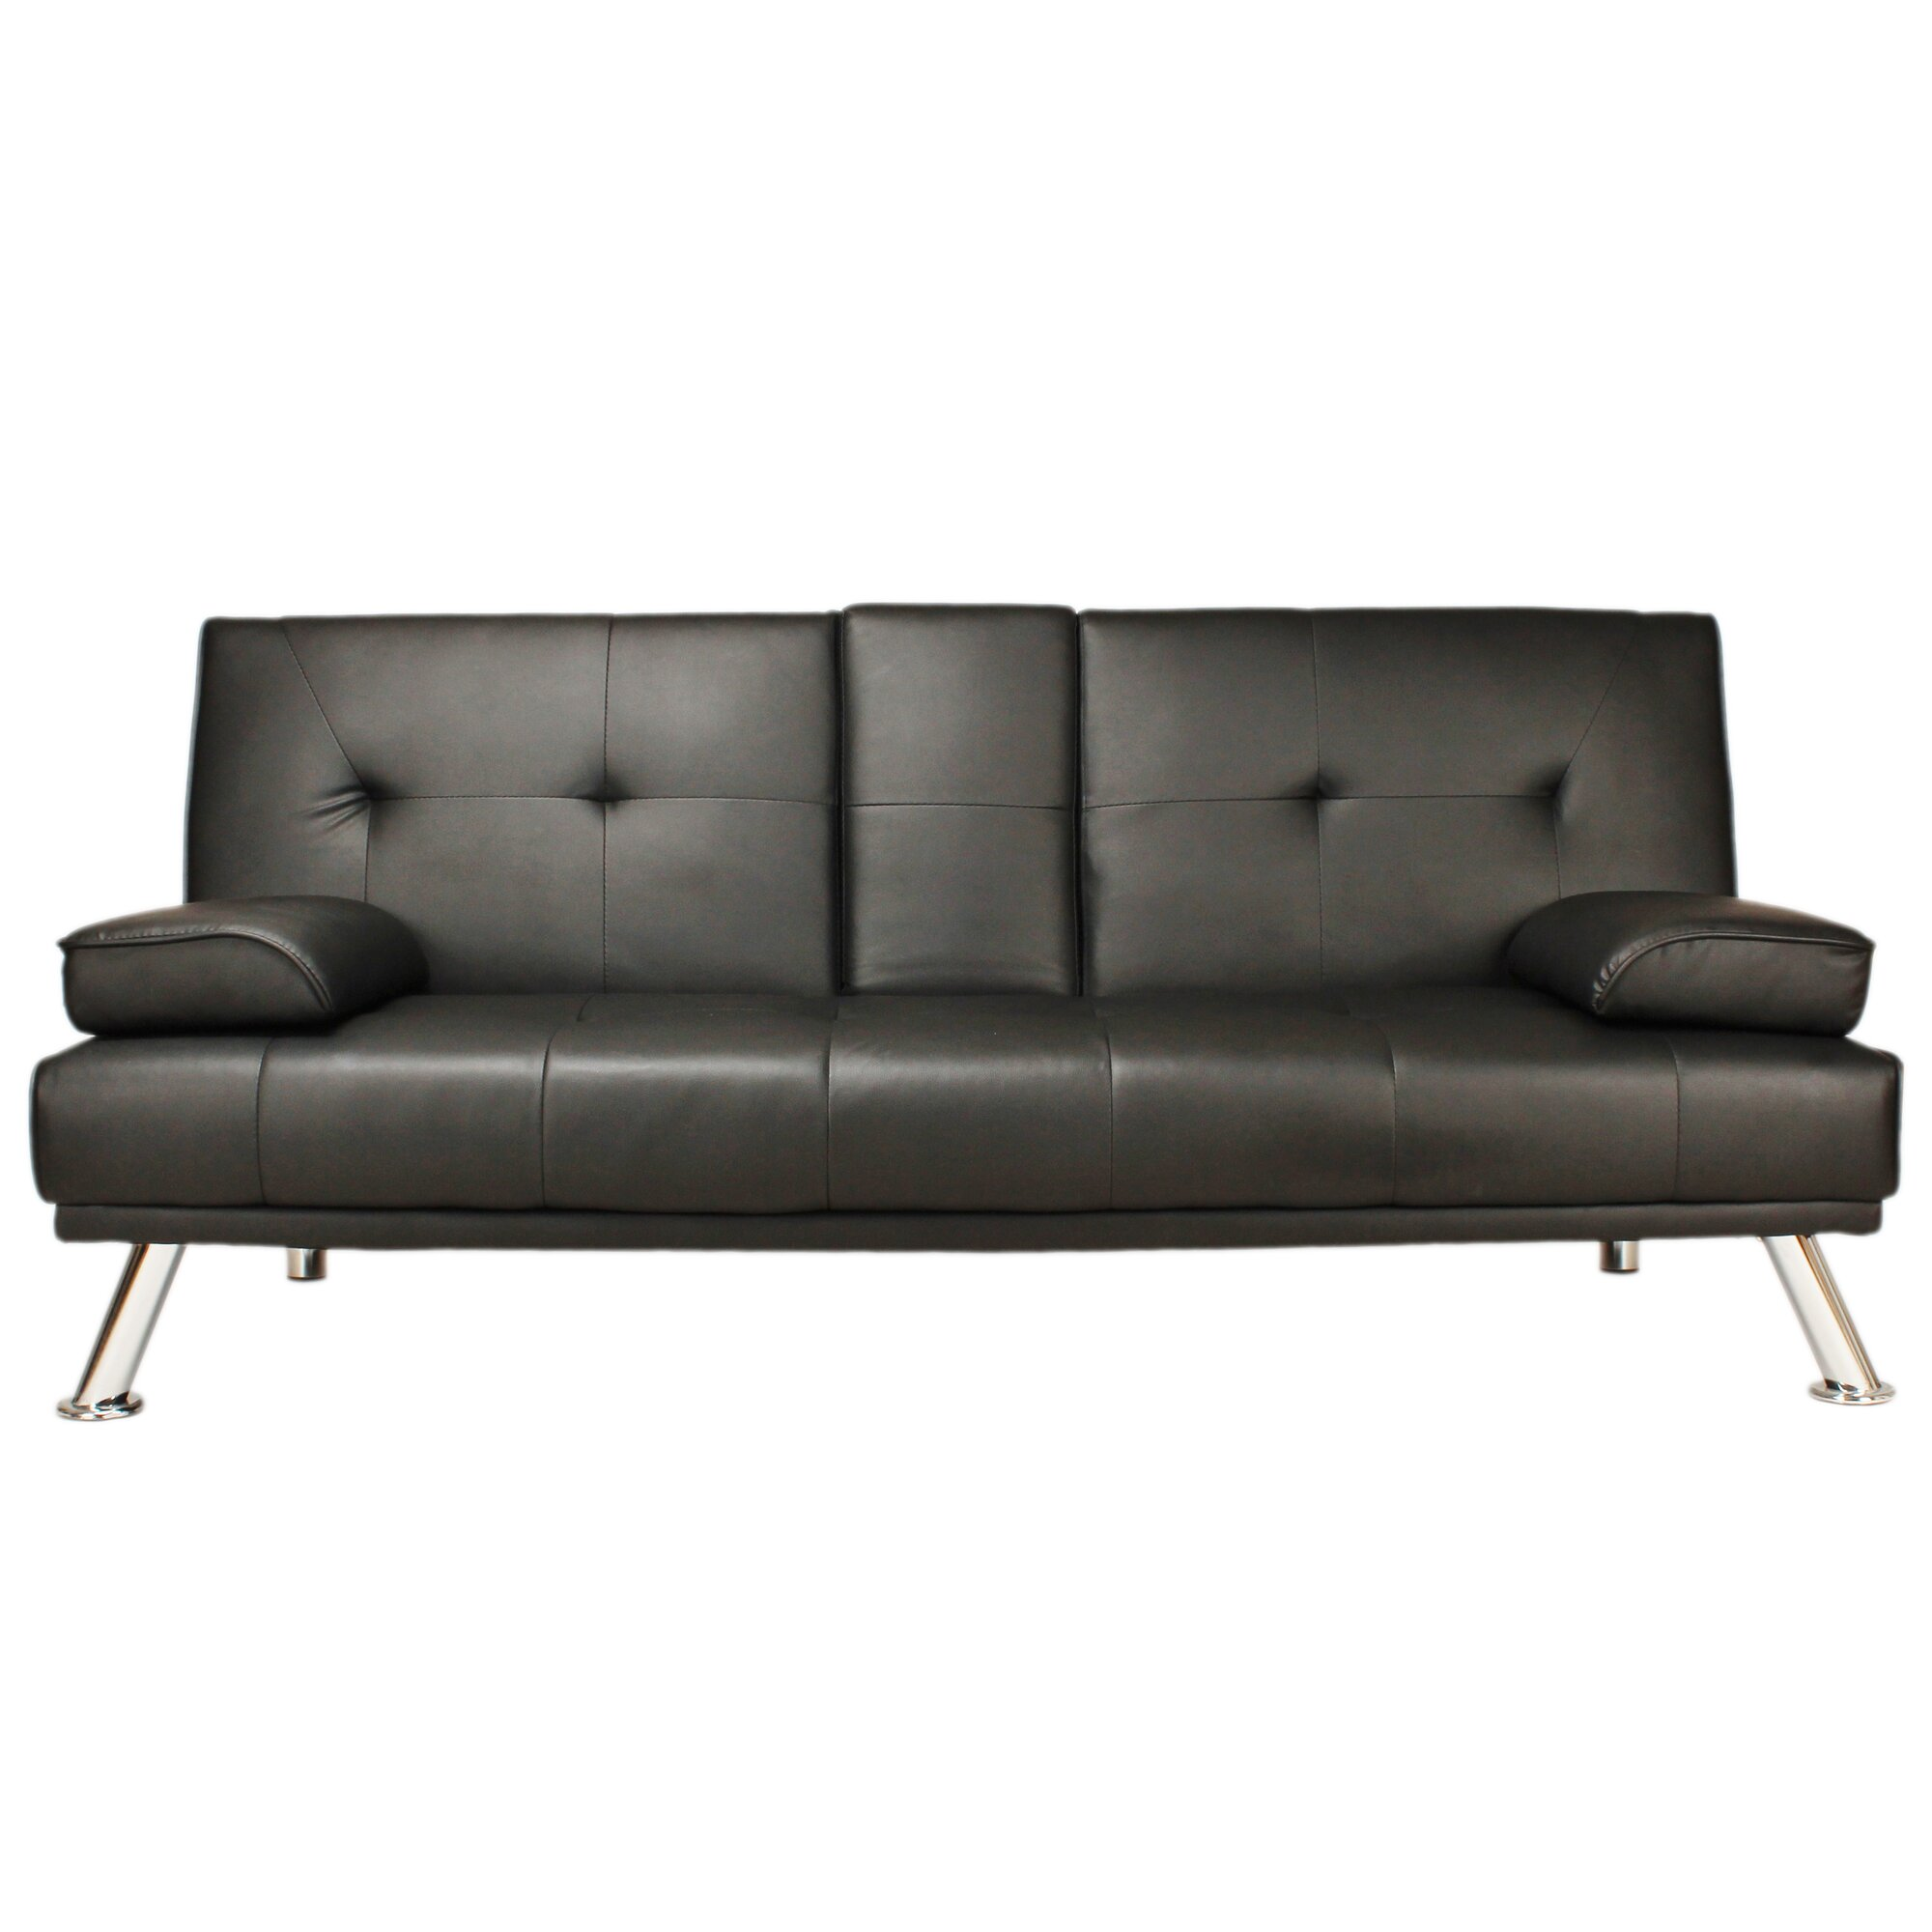 riana asia imports limited 2 sitzer schlafsofa como. Black Bedroom Furniture Sets. Home Design Ideas